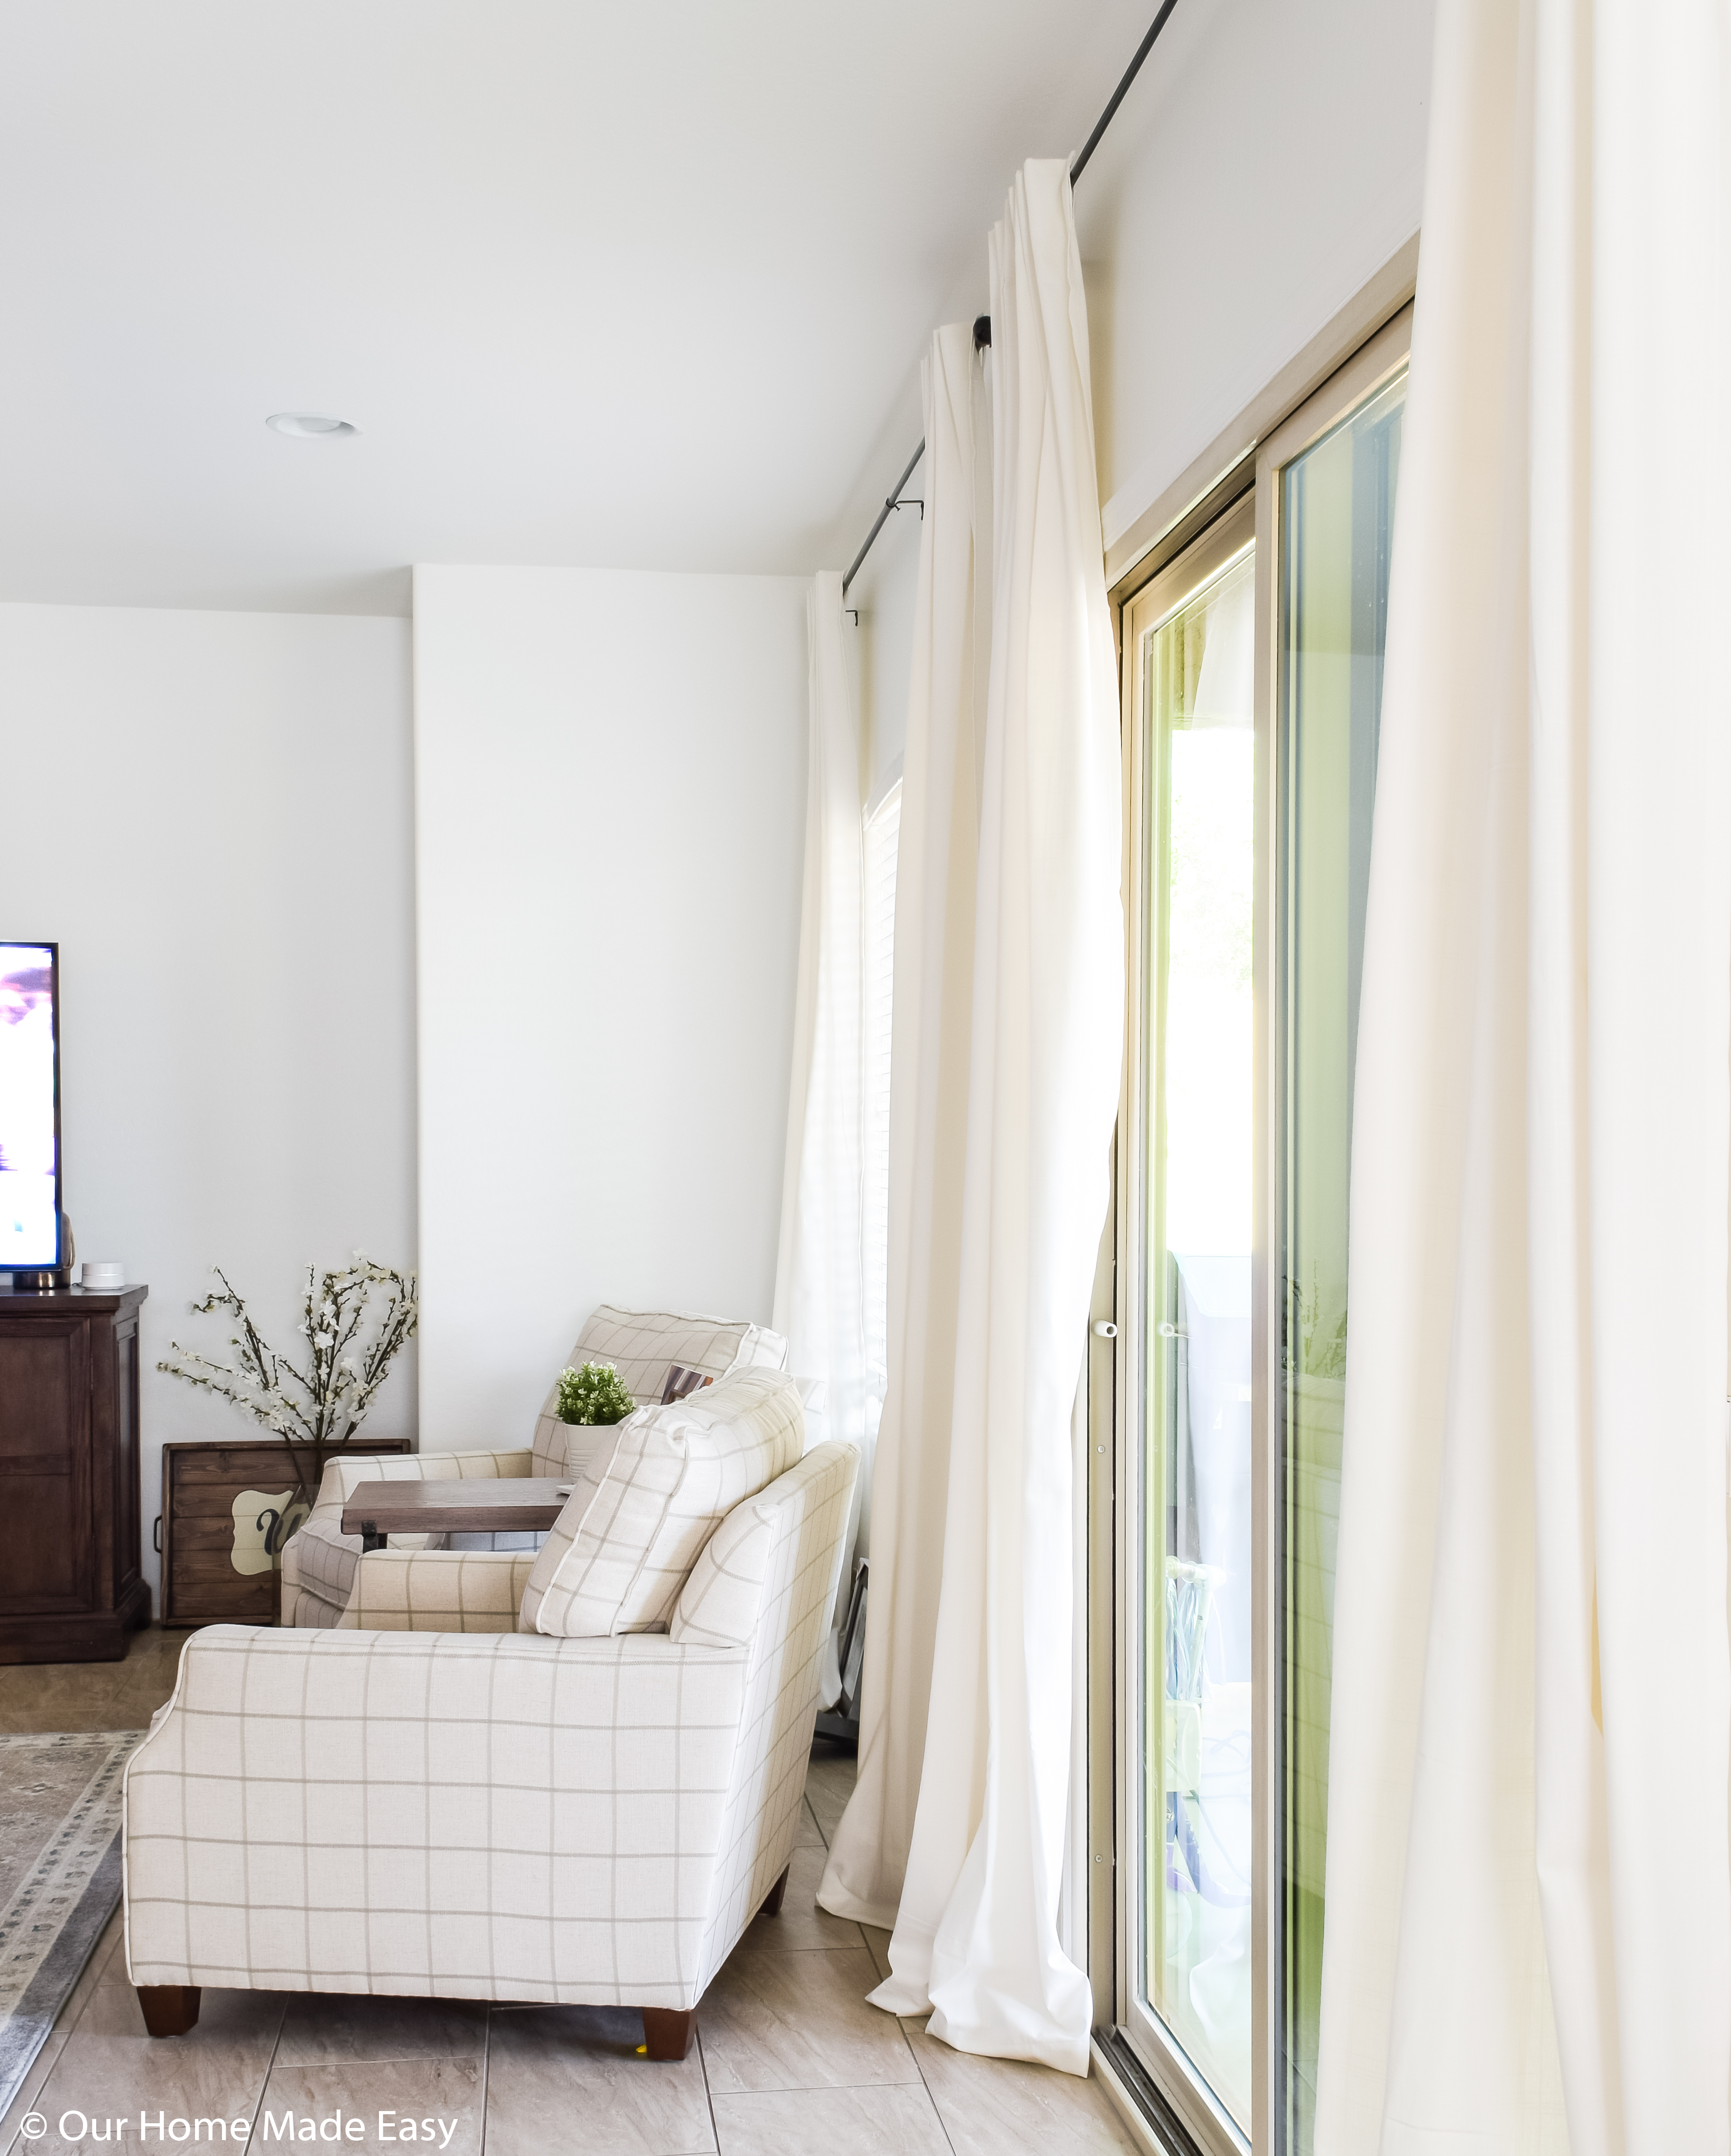 I love our extra-long hanging curtains! They make the room feel tall and full of light